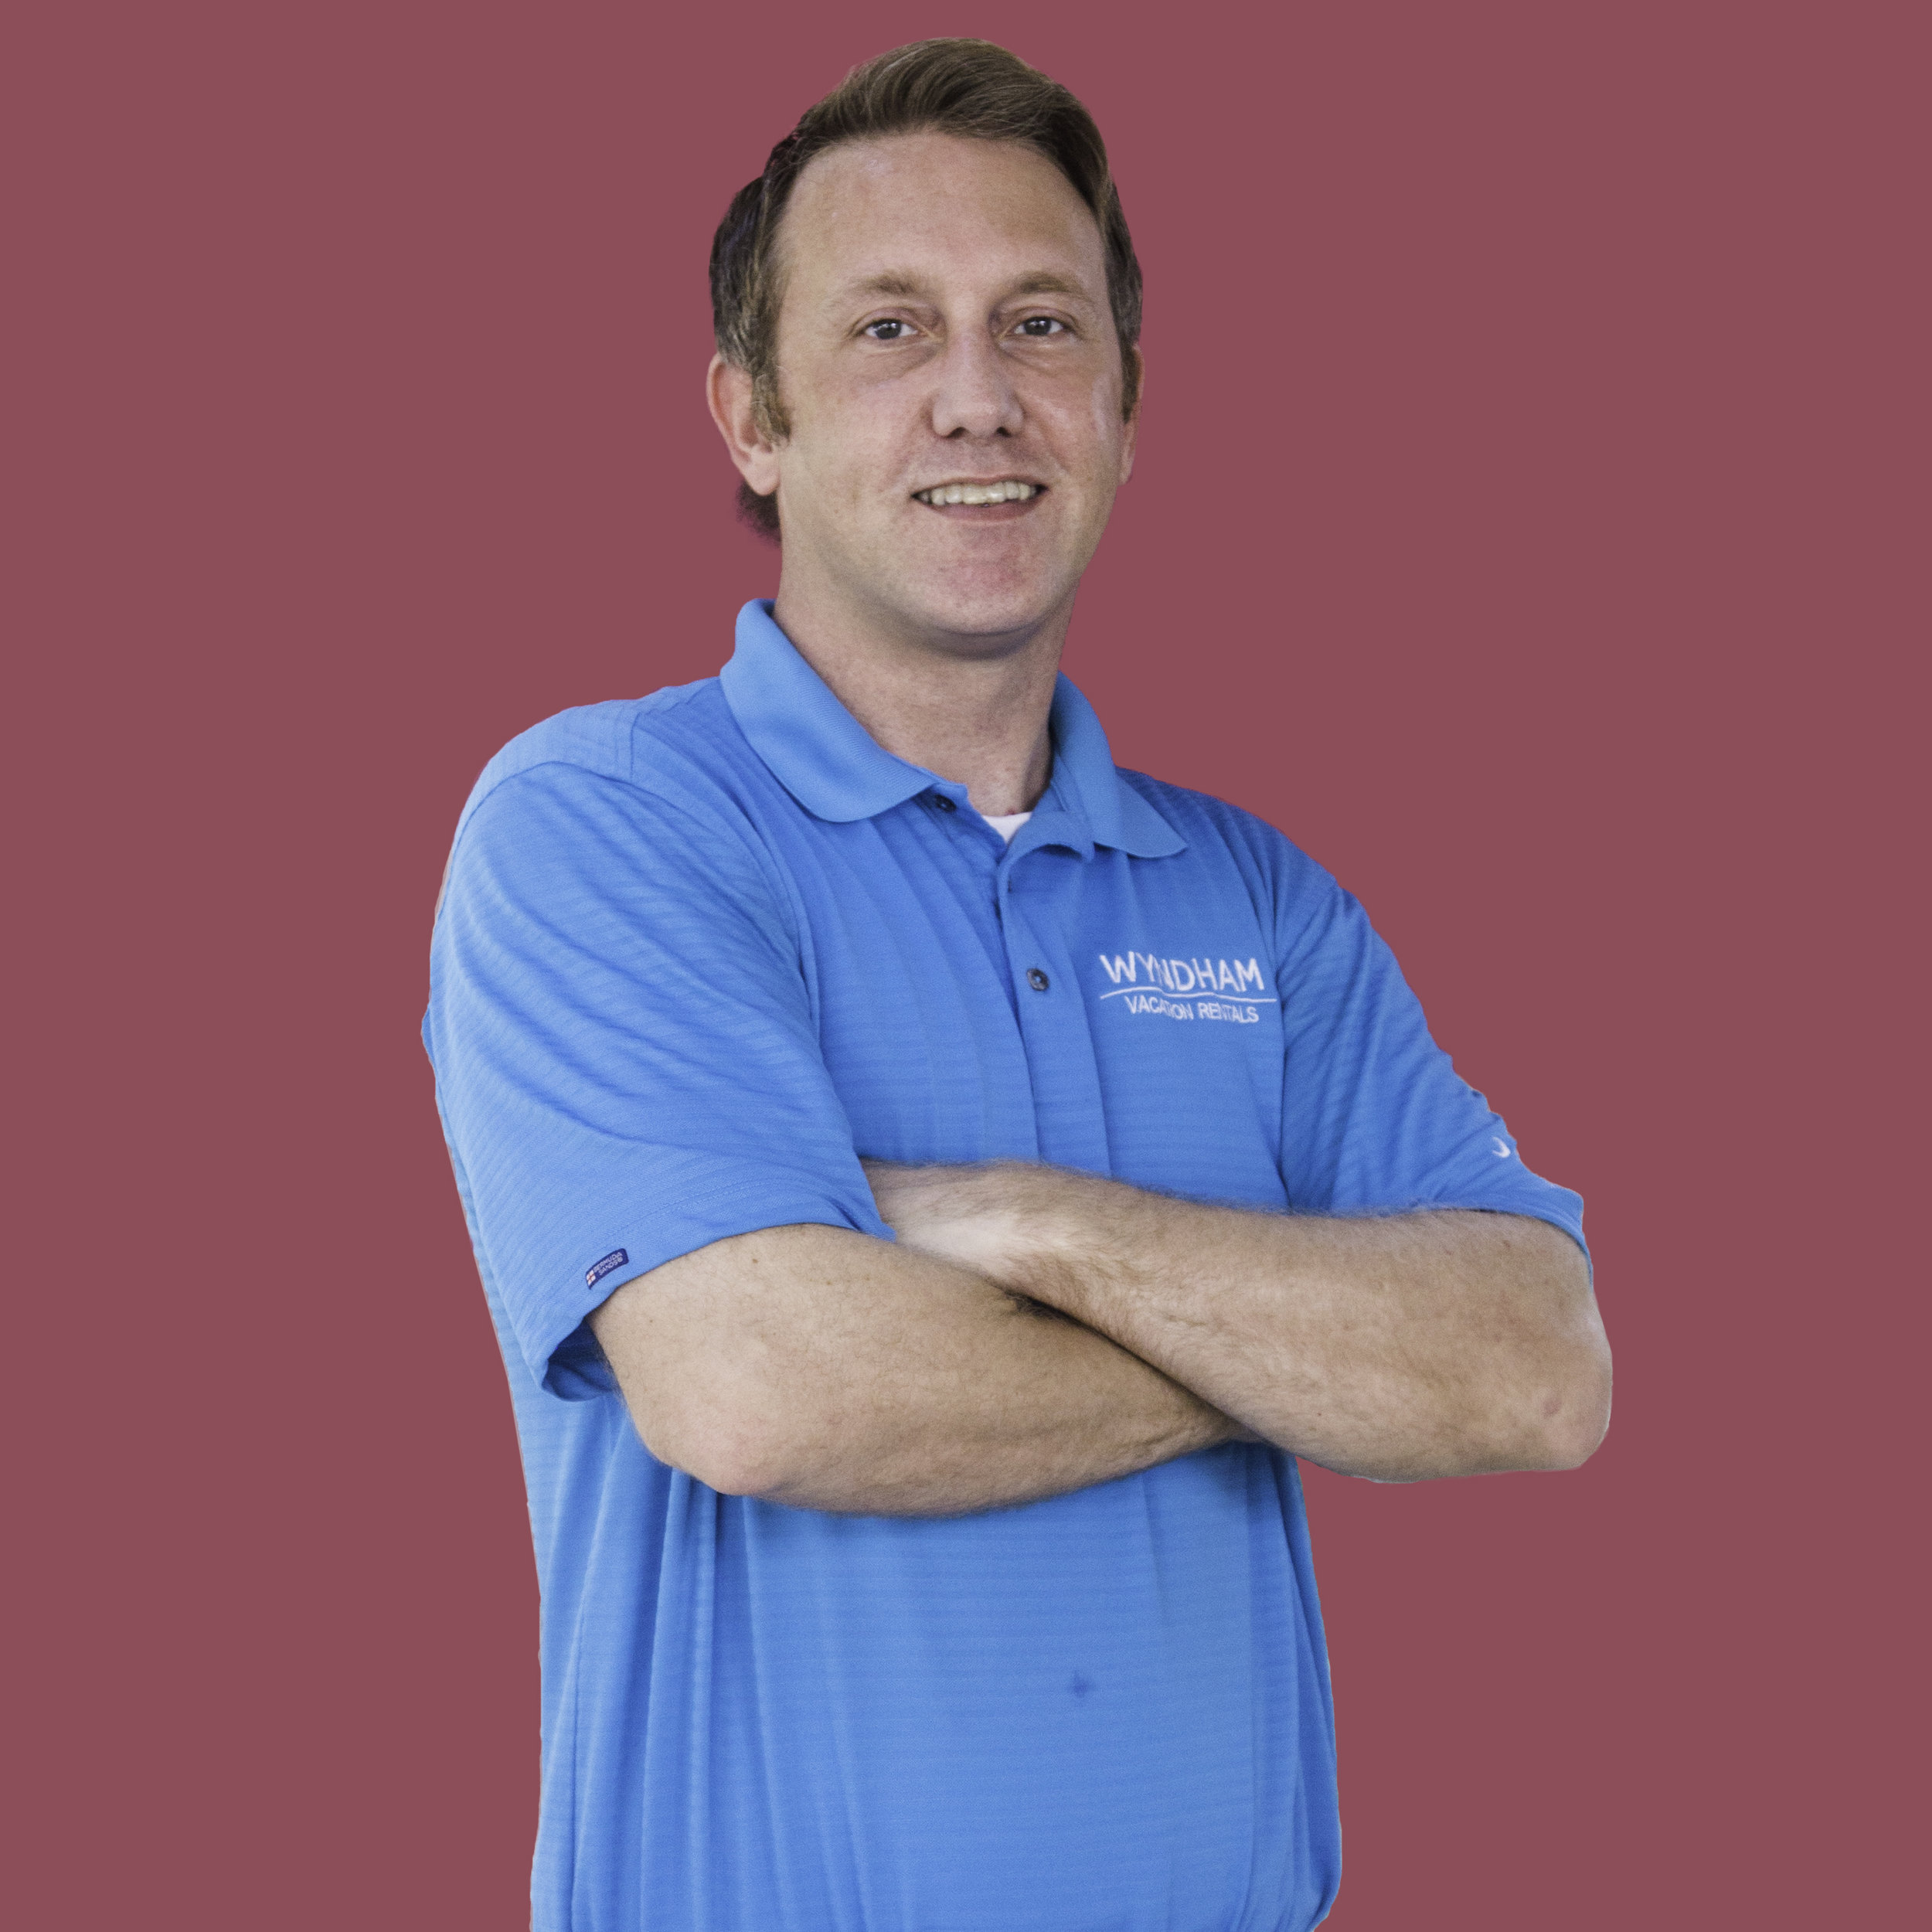 Bryon cmar | Property manager